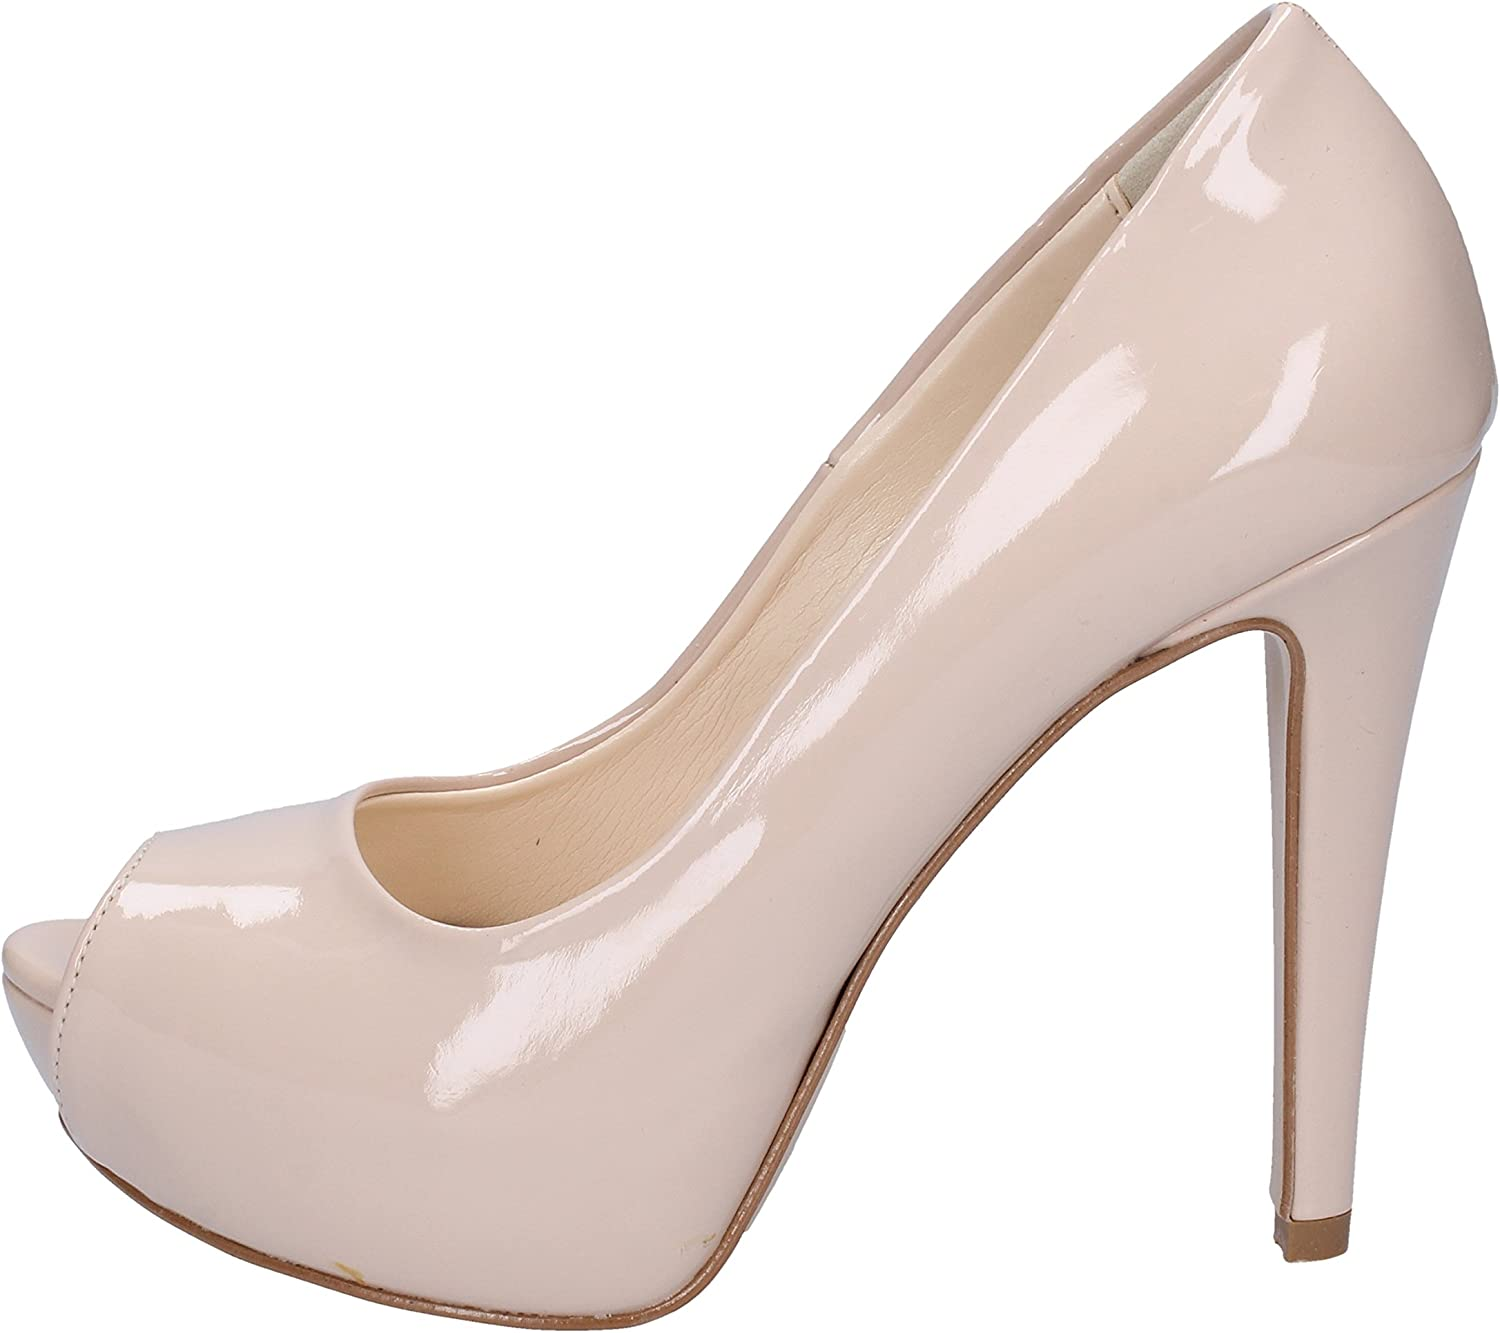 OLGA RUBINI Pumps-shoes Womens Beige